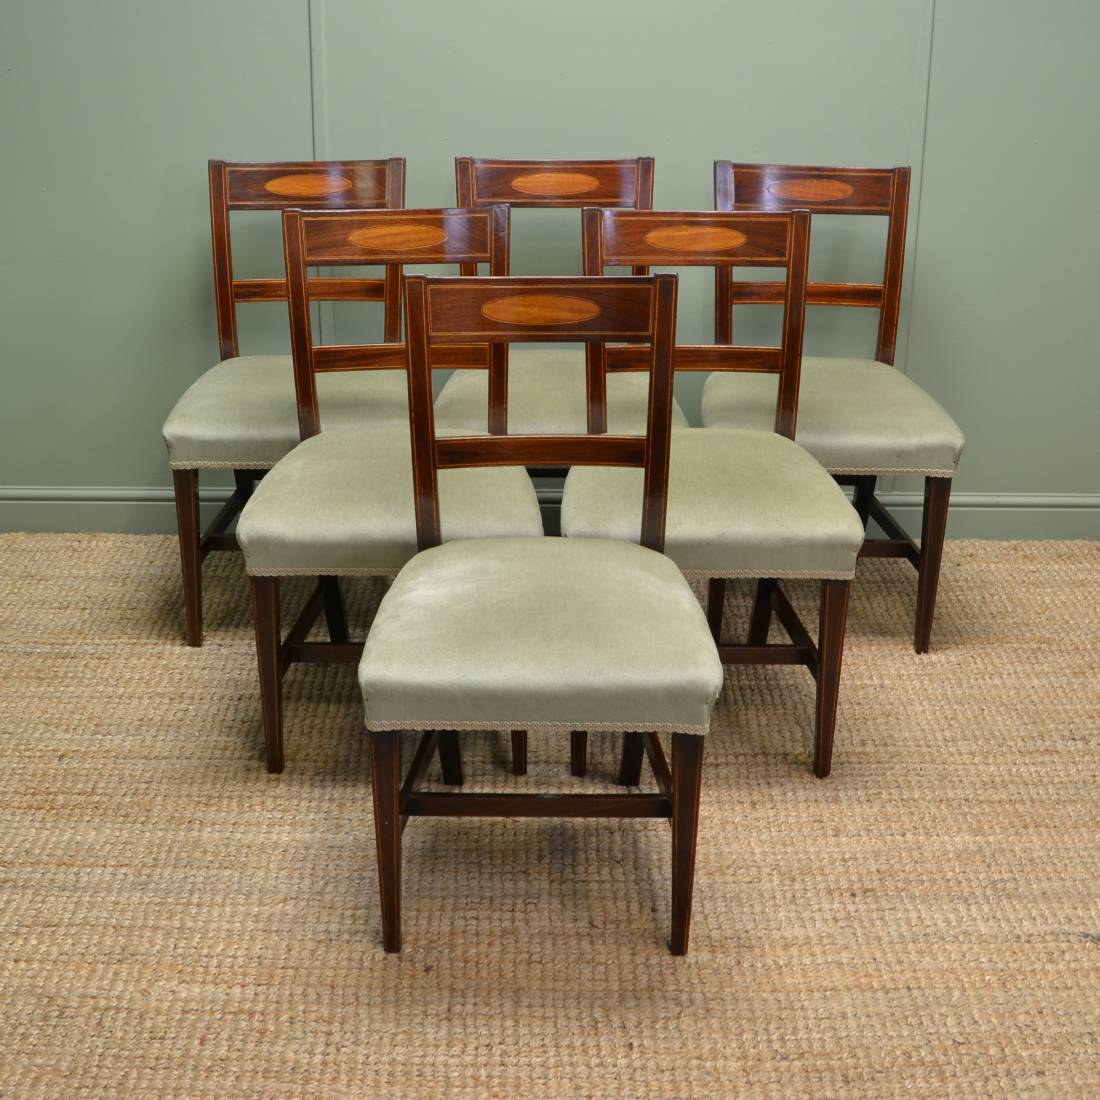 Dining Room Chairs Antique: Stunning Set Of Six Regency Inlaid Mahogany Antique Dining